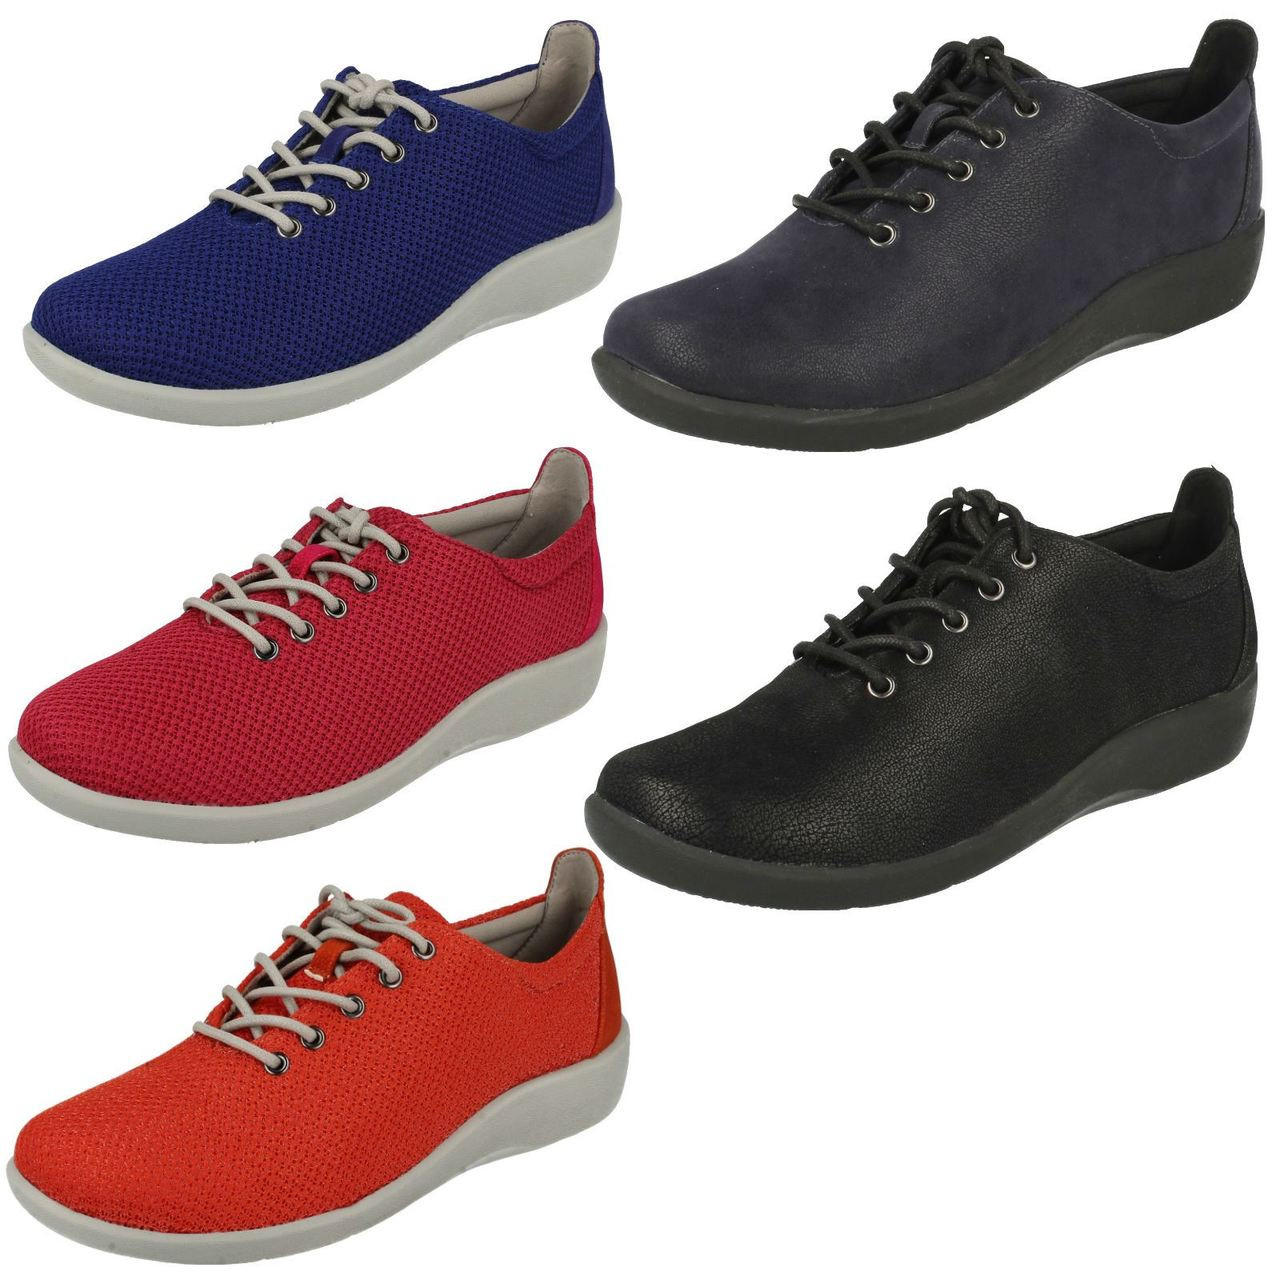 Ladies Clarks Cloud Steppers Lace Up